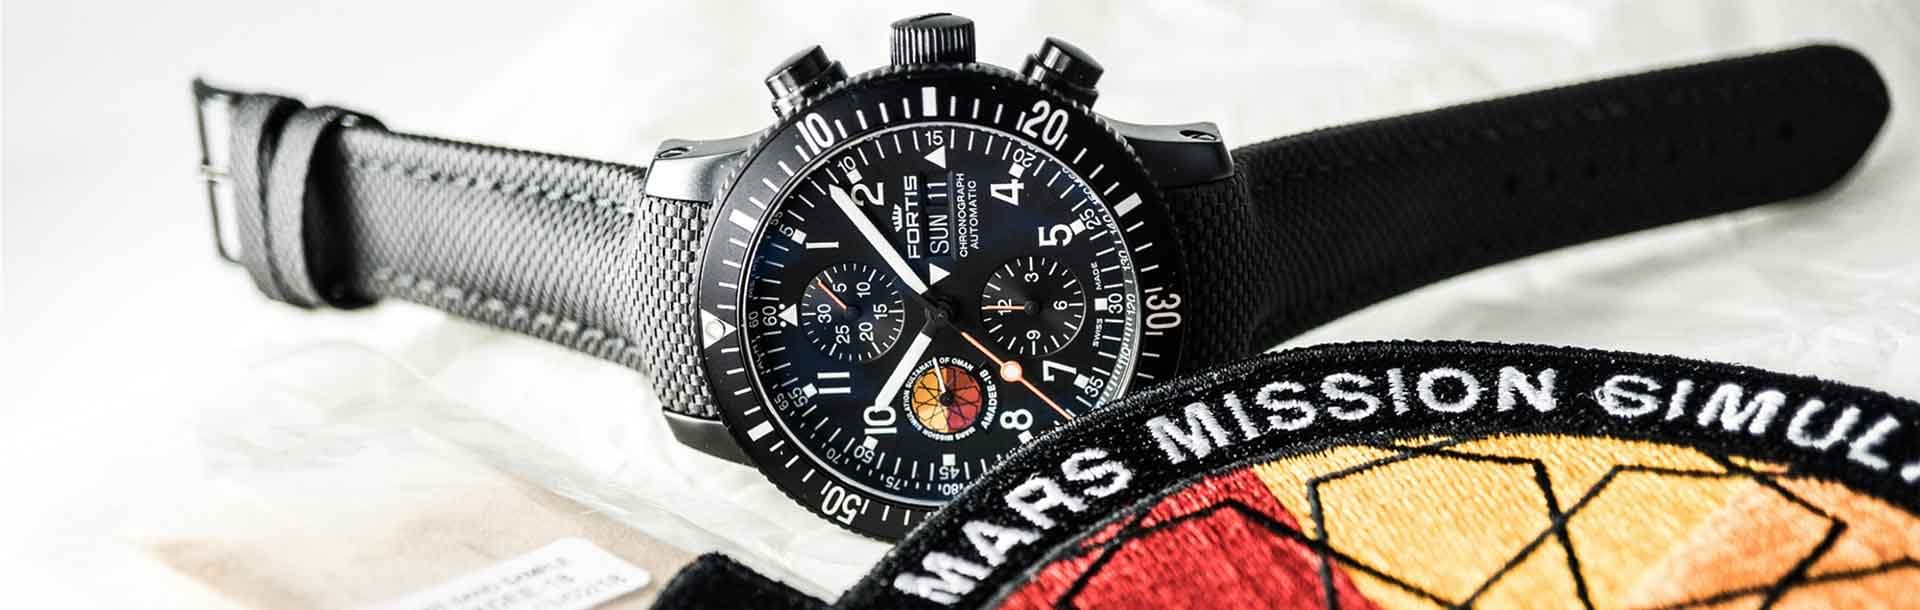 fortis_official_watches